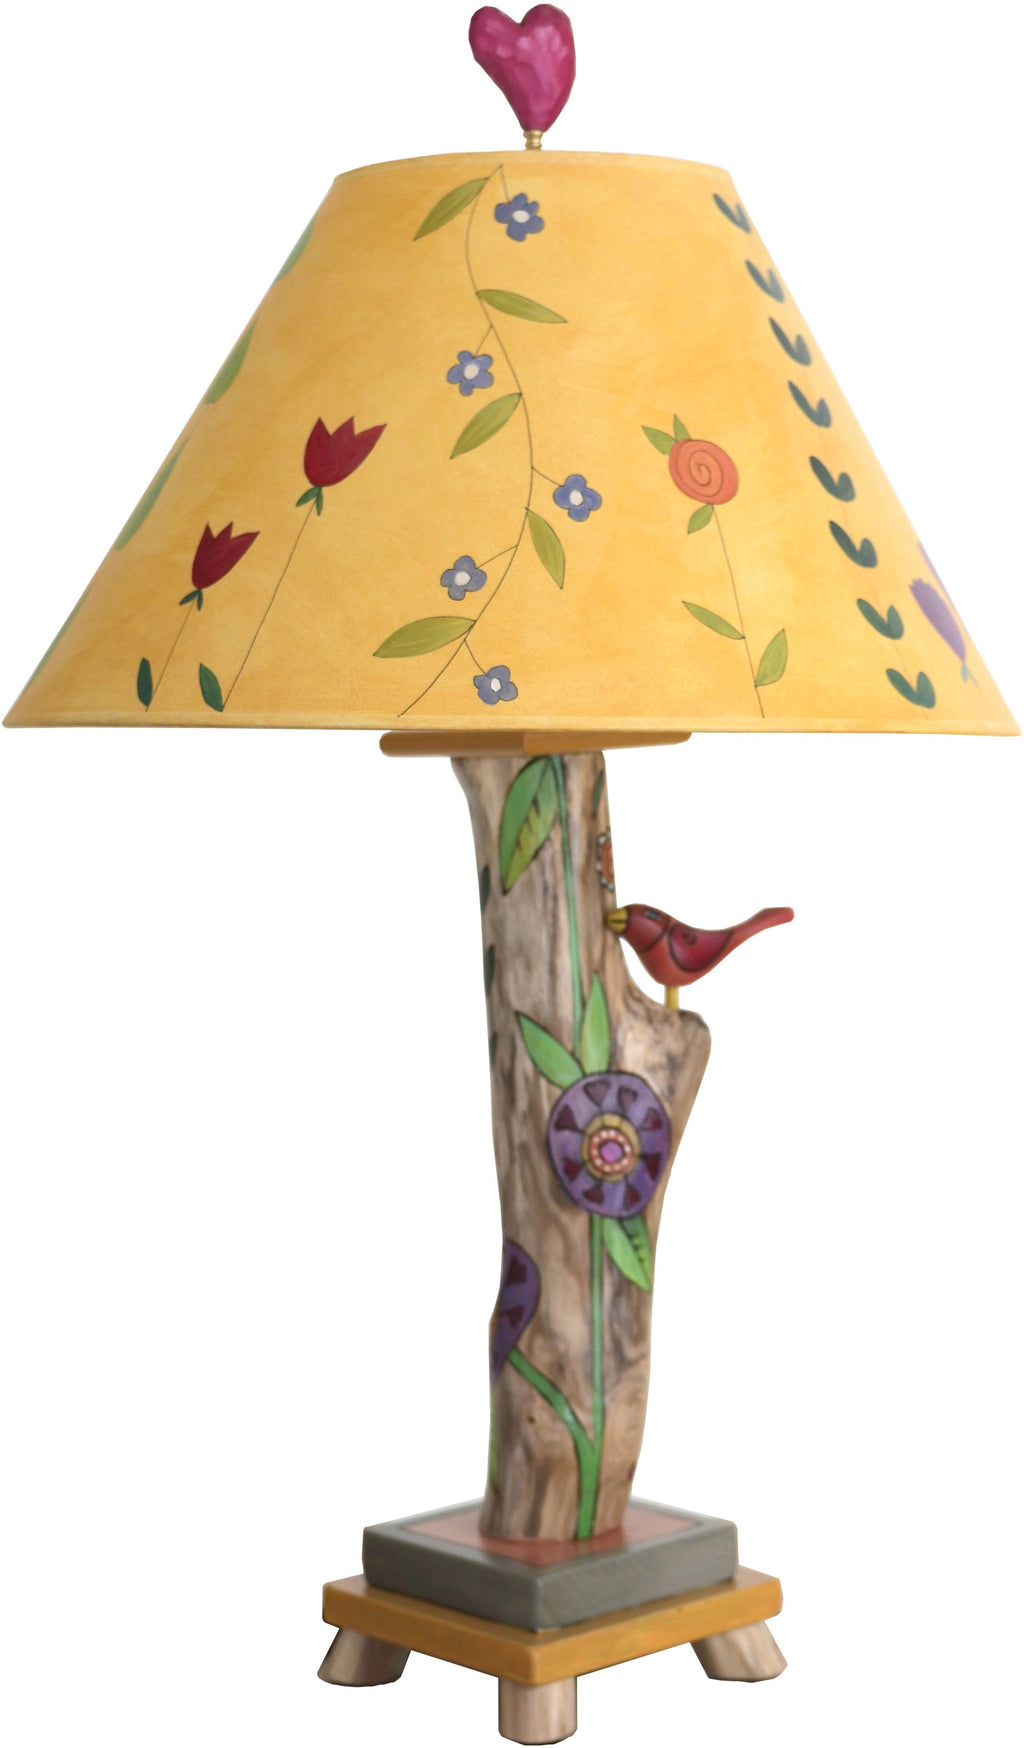 Log Table Lamp –  Elegant little table lamp with vine and floral motifs